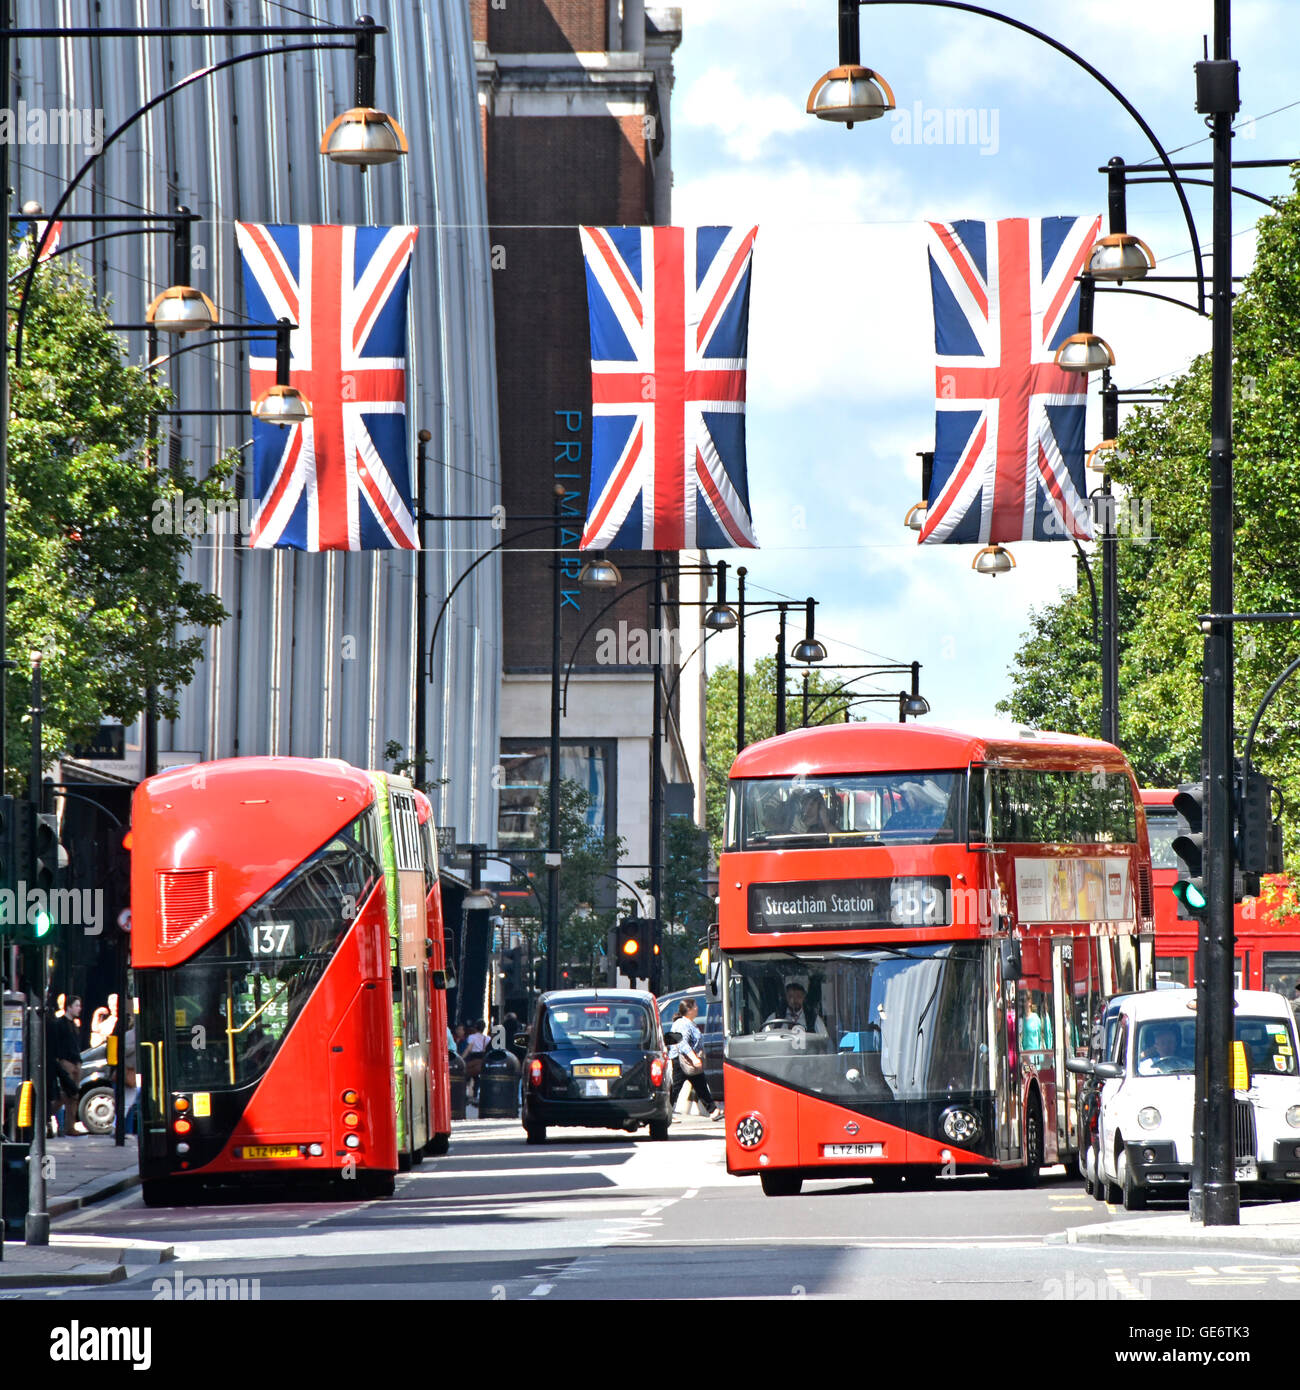 Oxford Street West End London England UK new red double decker Routemaster buses below Union Jack flags in this - Stock Image